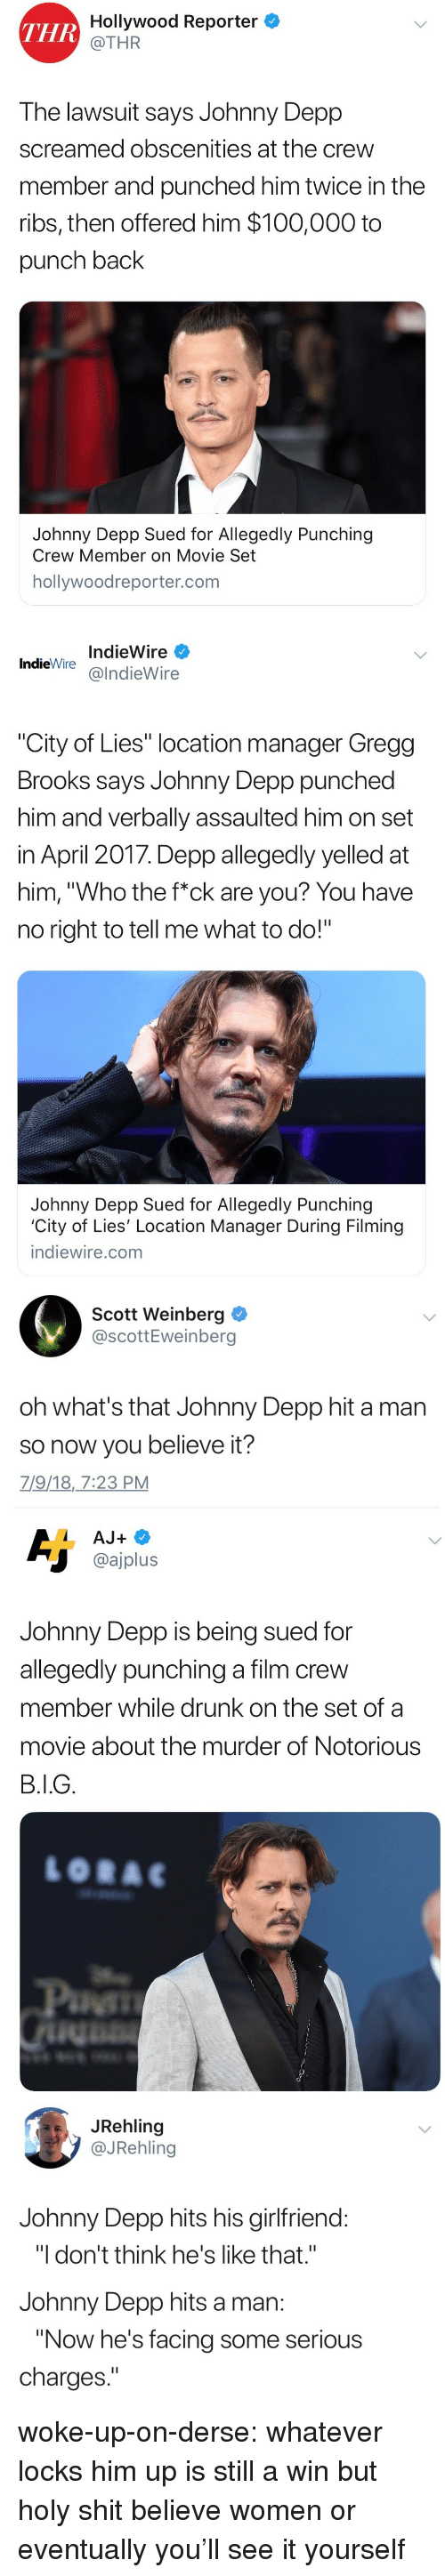 """depp: THR  Hollywood Reporter  @THR  The lawsuit says Johnny Depp  screamed obscenities at the crew  member and punched him twice in the  ribs, then offered him $100,000 to  punch back  Johnny Depp Sued for Allegedly Punching  Crew Member on Movie Set  hollywoodreporter.com   IndieWire  IndieWirealndieWire  City of Lies"""" location manager Gregg  Brooks says Johnny Depp punched  him and verbally assaulted him on set  in Aprll Z01/. Depp allegedly yelled at  him, """"Who the f*ck are you? You have  no right to tell me what to do!""""  Johnny Depp Sued for Allegedly Punching  City of Lies' Location Manager During Filming  indiewire.com   Scott Weinberg  @scottEweinberg  oh what's that Johnny Depp hit a man  so now you believe it?  7/9/18,_7:23 PM   @ajplus  Johnny Depp is being sued for  allegedly punching a film crew  member while drunk on the set of a  movie about the murder of Notorious   JRehling  @JRehling  Johnny Depp hits his girlfriend  """"I don't think he's like that.""""  Johnny Depp hits a man  """"Now he's facing some serious  charges woke-up-on-derse: whatever locks him up is still a win but holy shit believe women or eventually you'll see it yourself"""